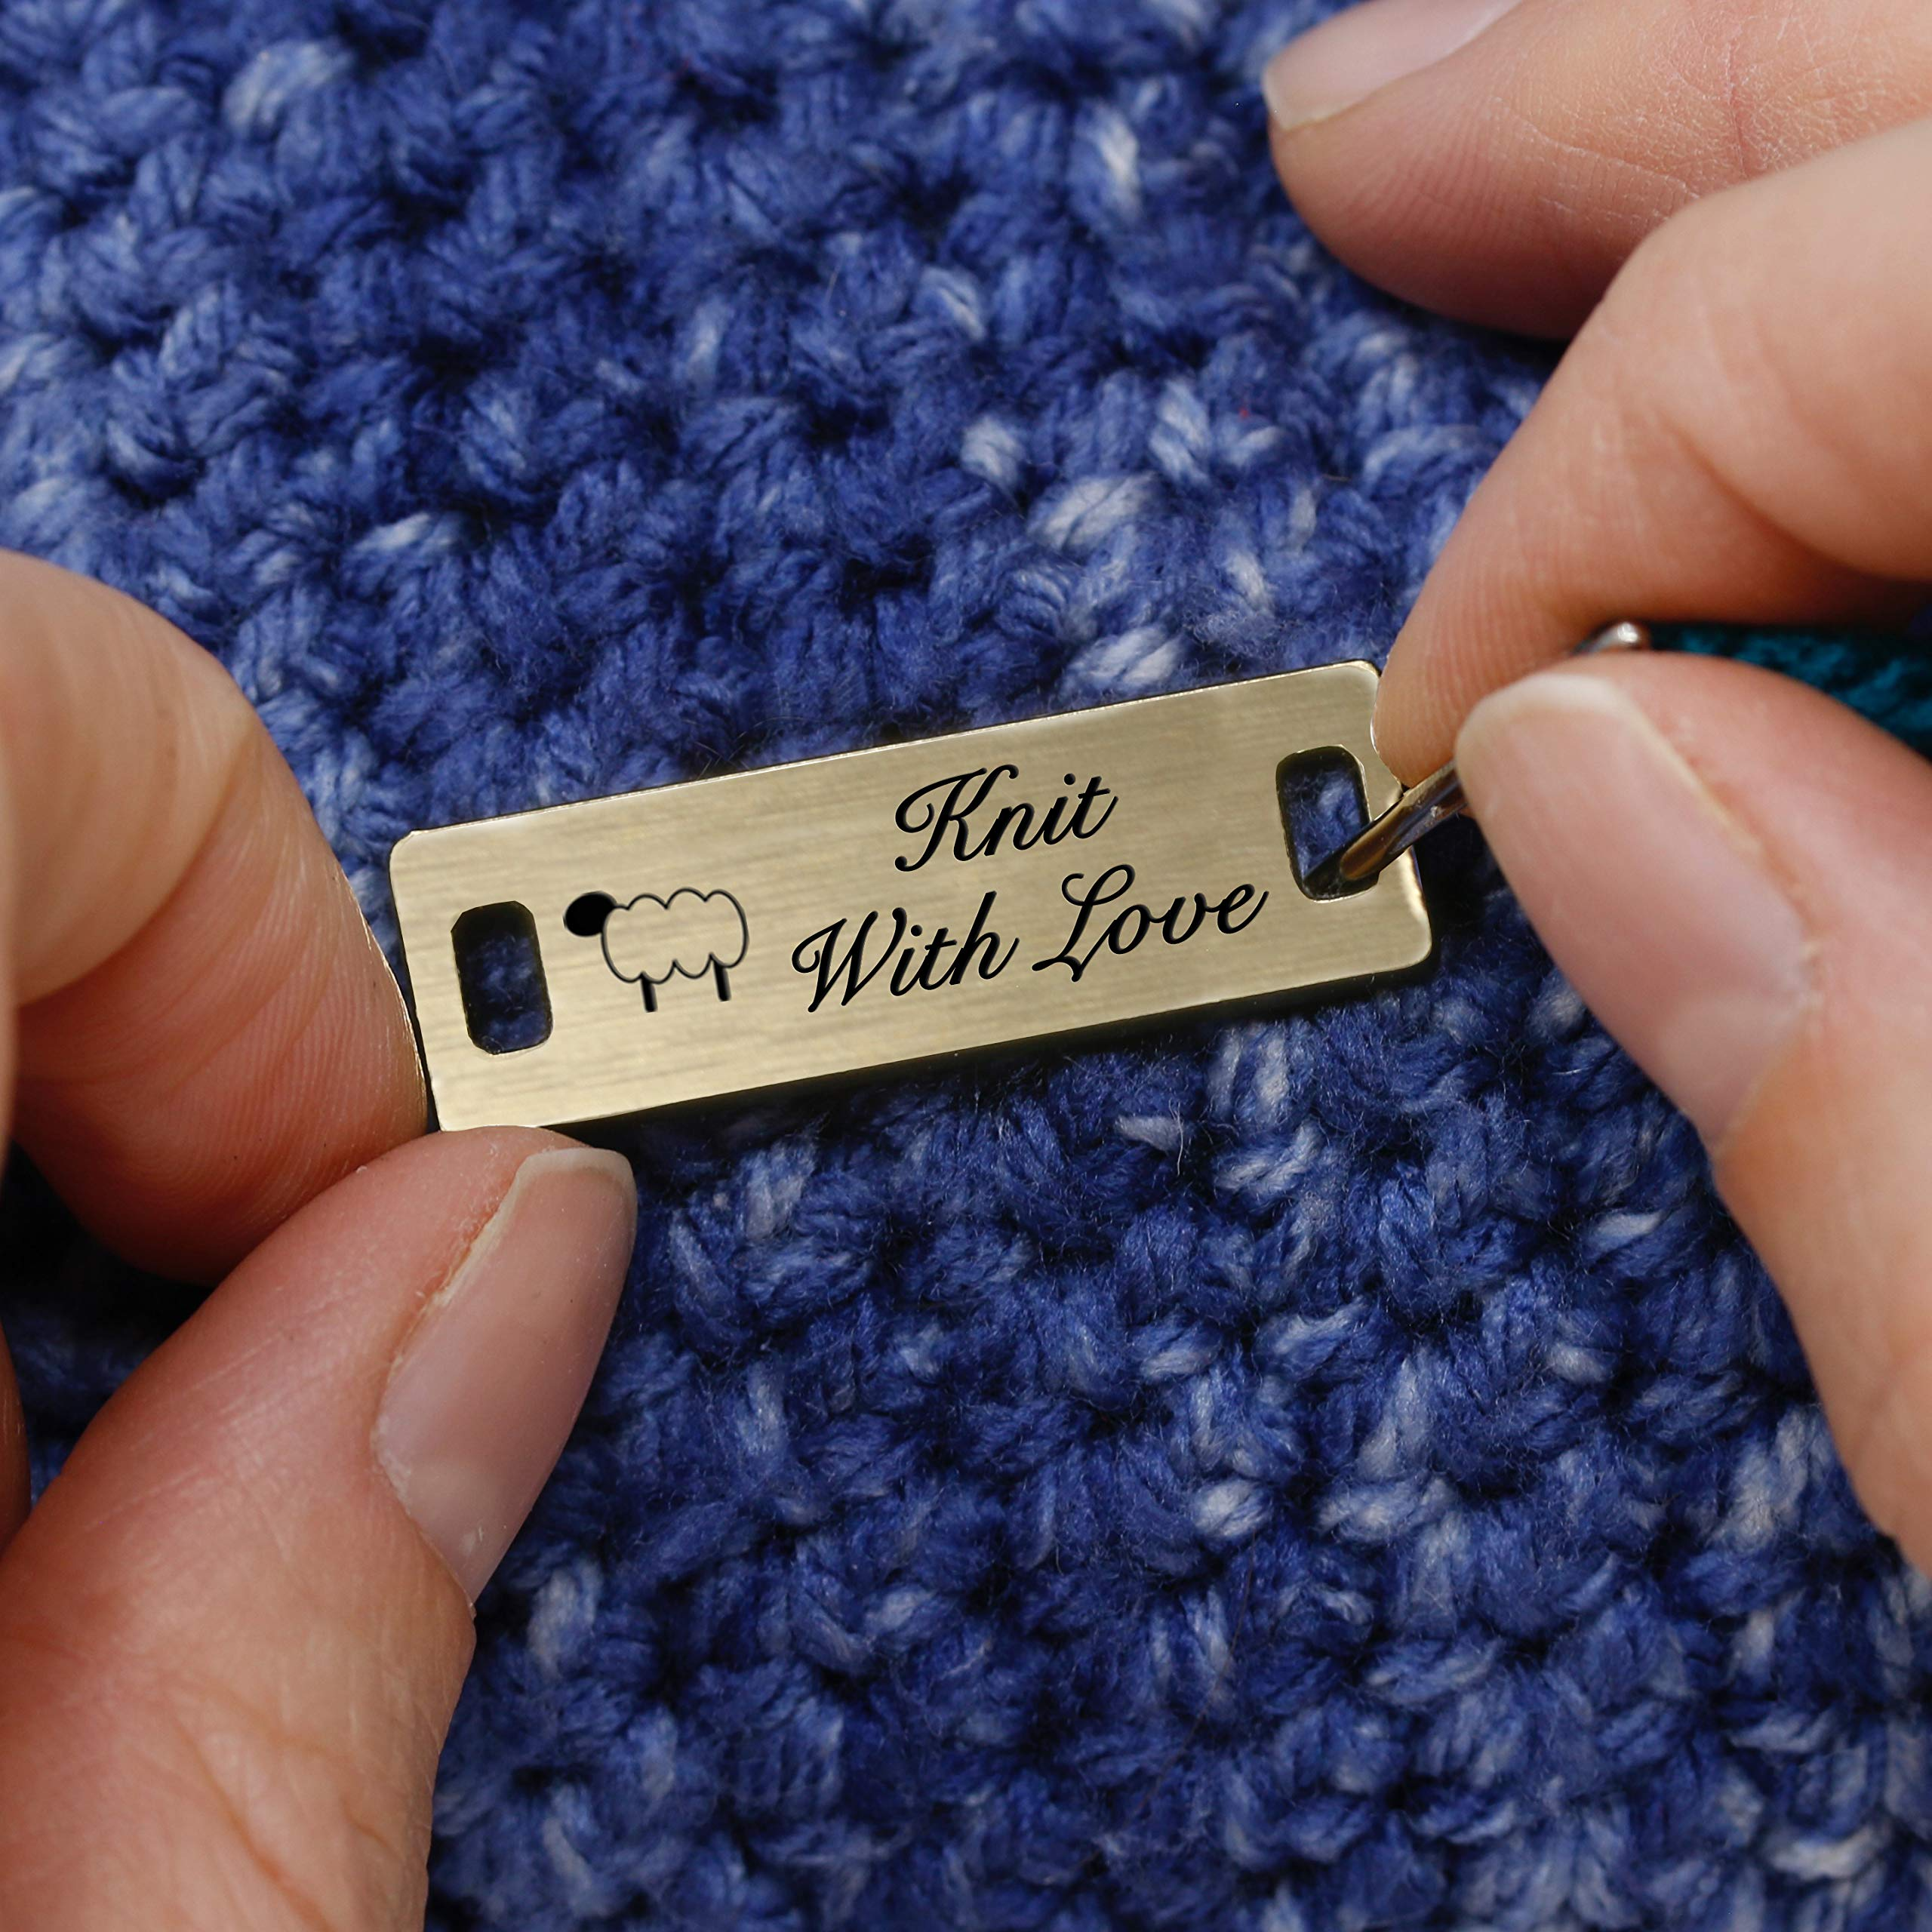 LHS Engraving | Personalized Handmade Tags Custom Engraved Brushed Brass Plastic Sewing & Knitting Notions Black Lettering USA - M6 by LHS Engraving (Image #4)